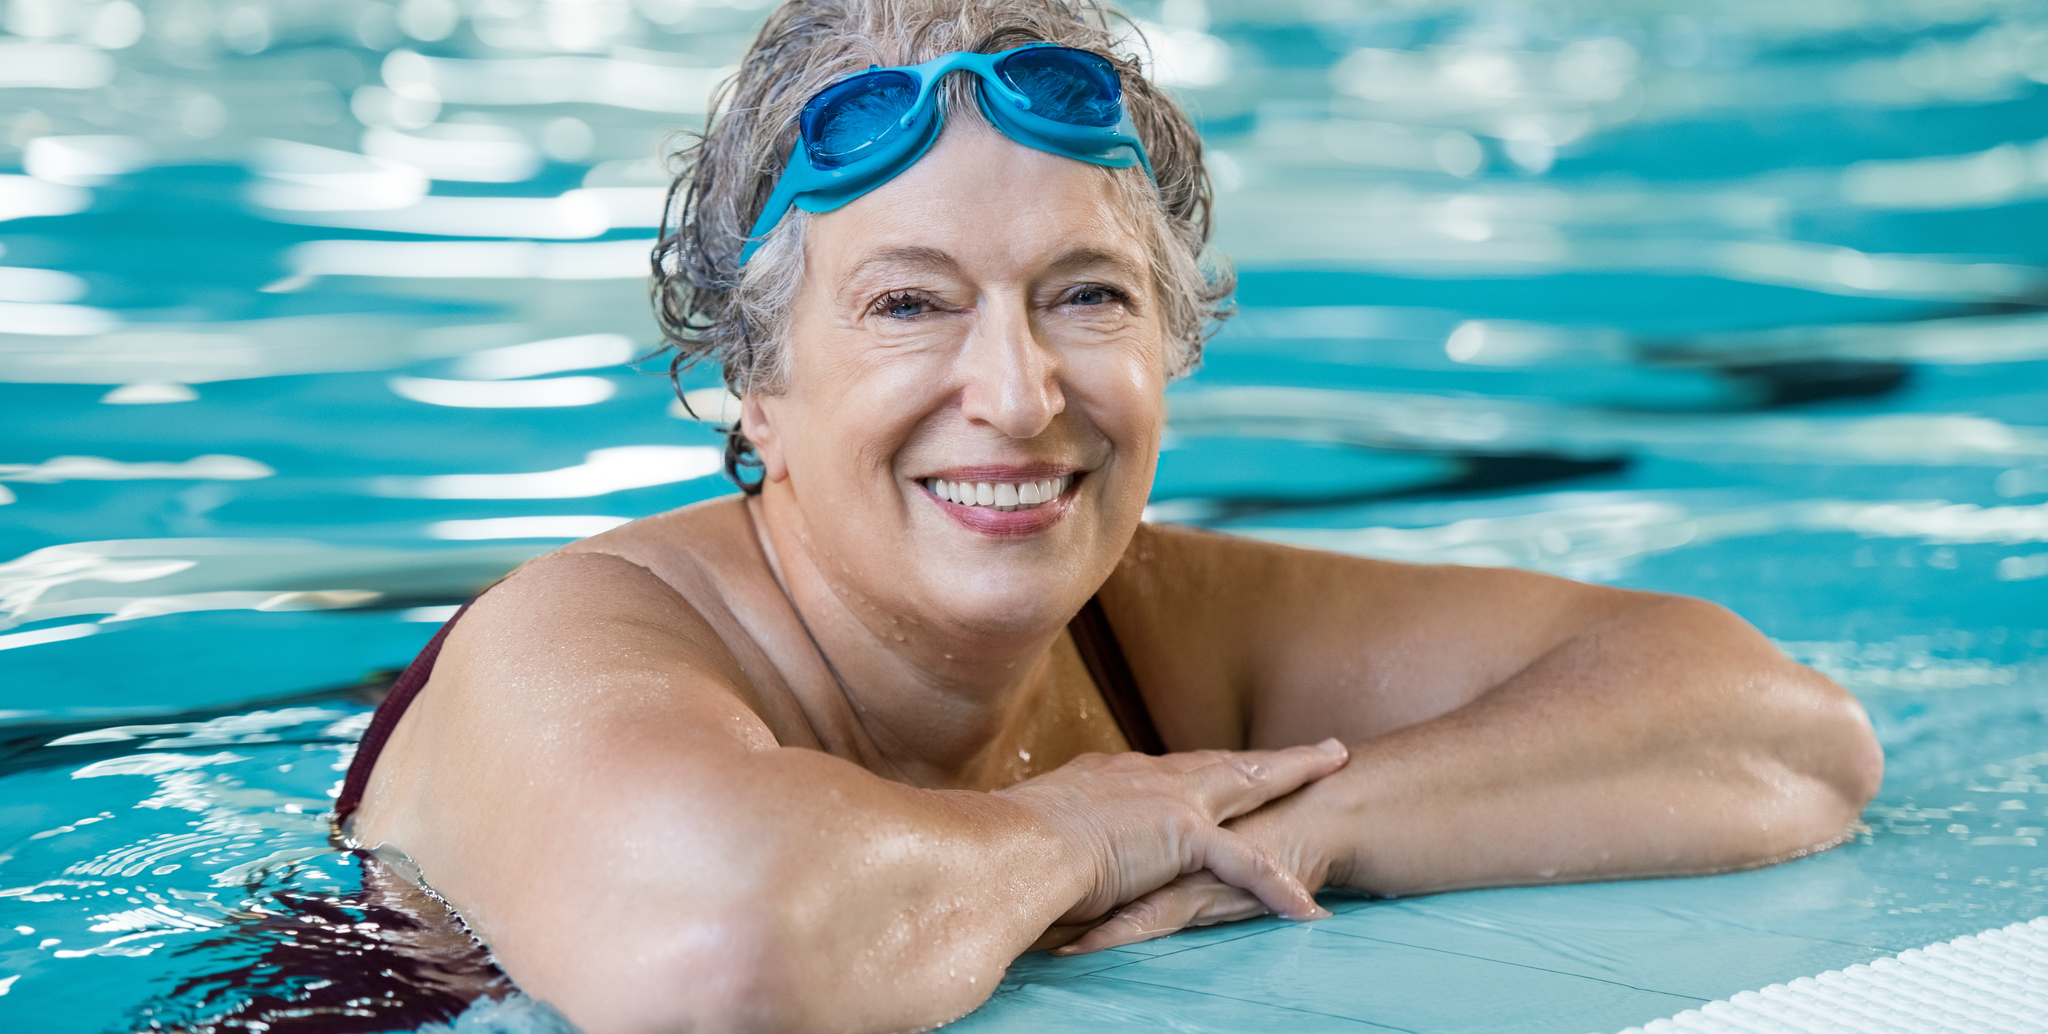 fit senior woman smiling while in the pool during a water workout